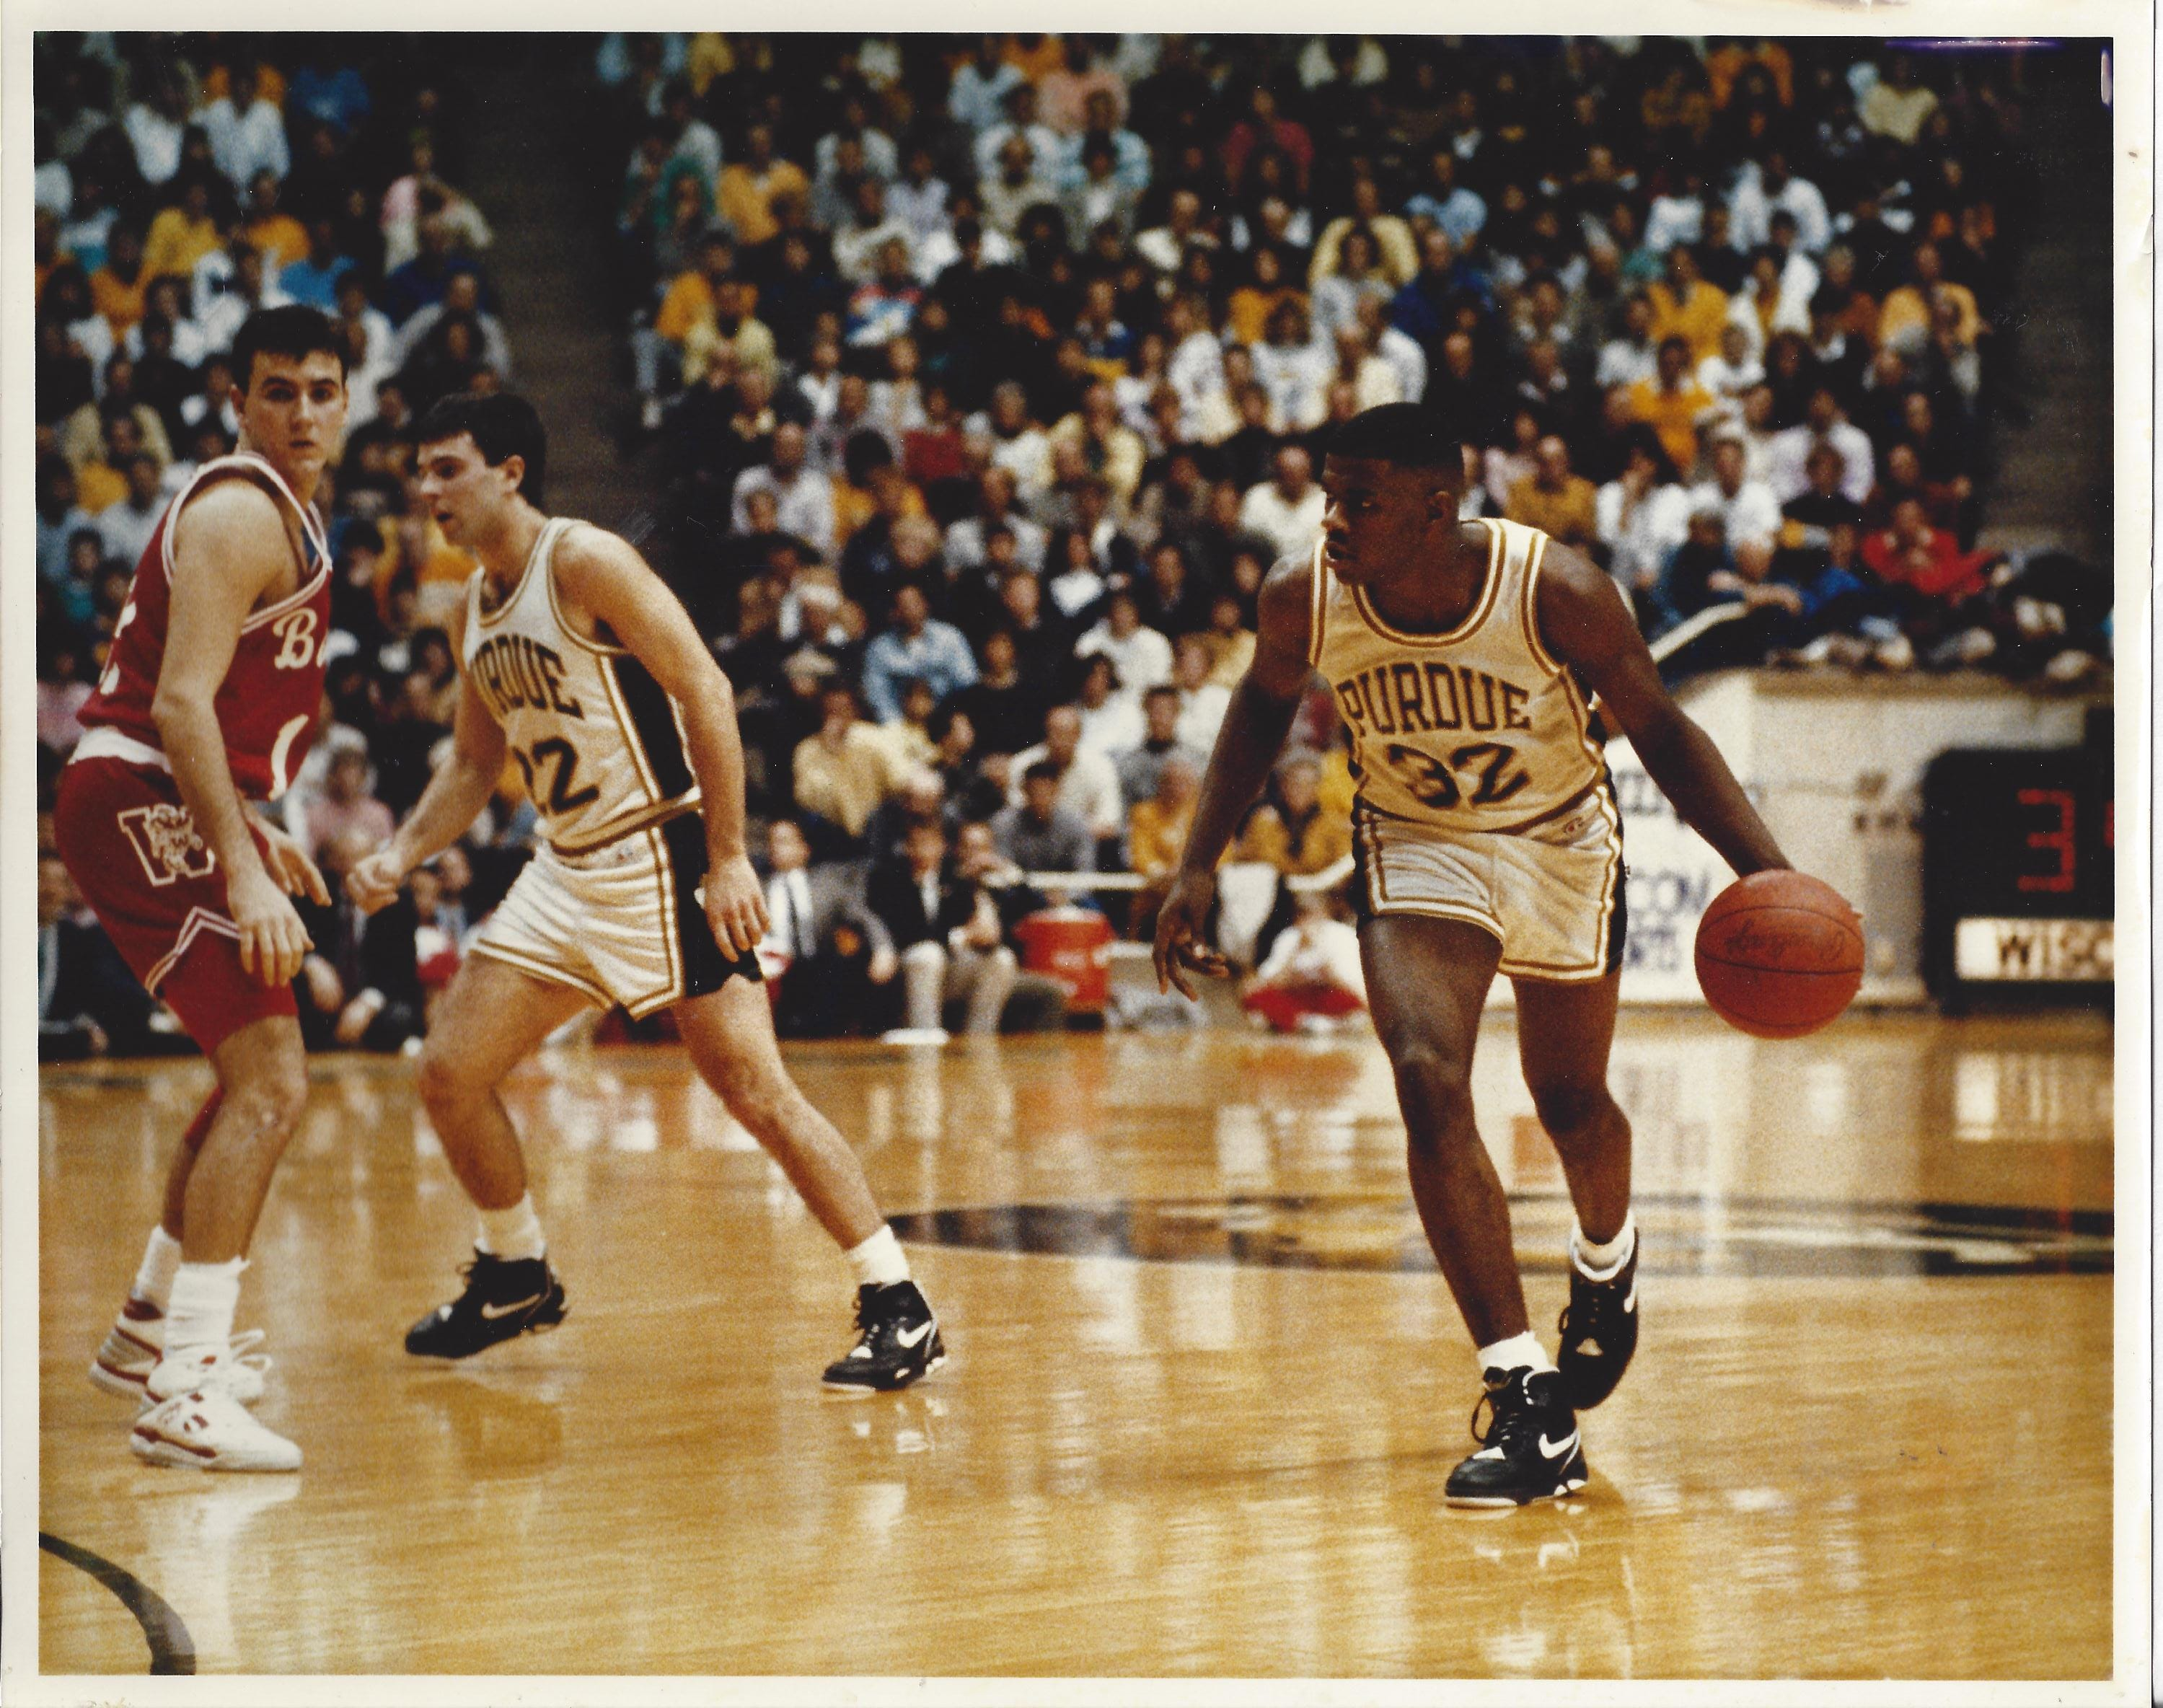 Jimmy Oliver (32) led Purdue in scoring with a 19.2 average in 1991.